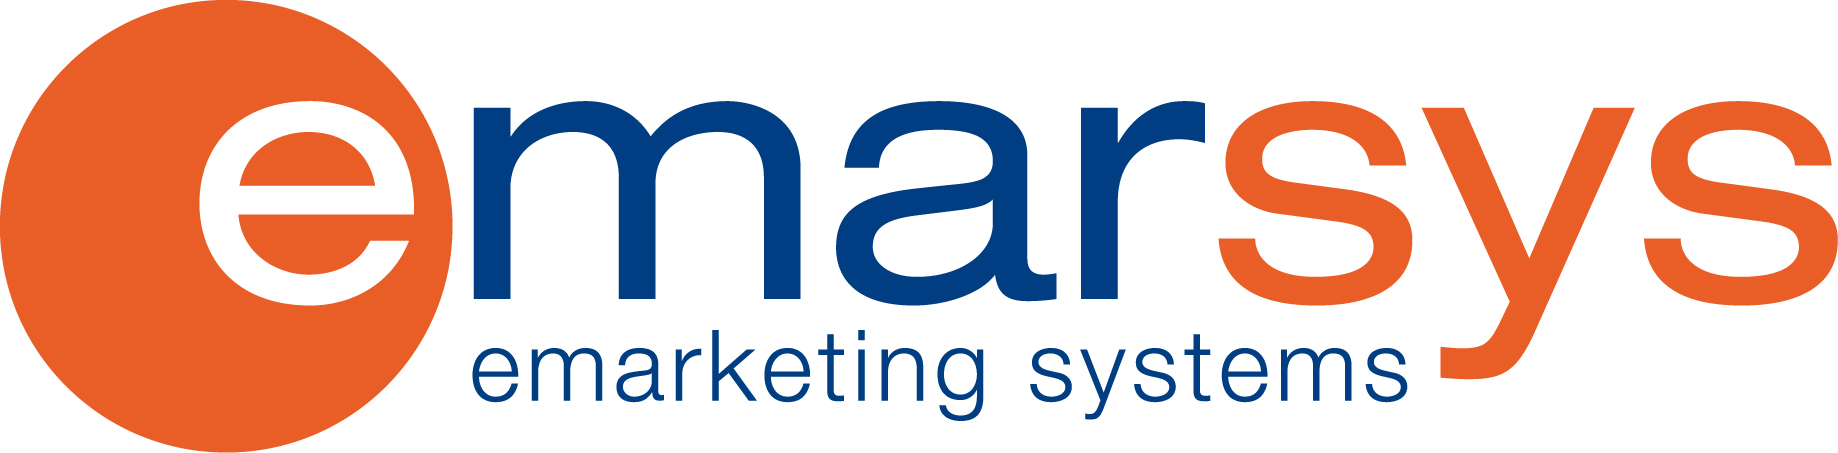 emarsys eMarketing Systems AG